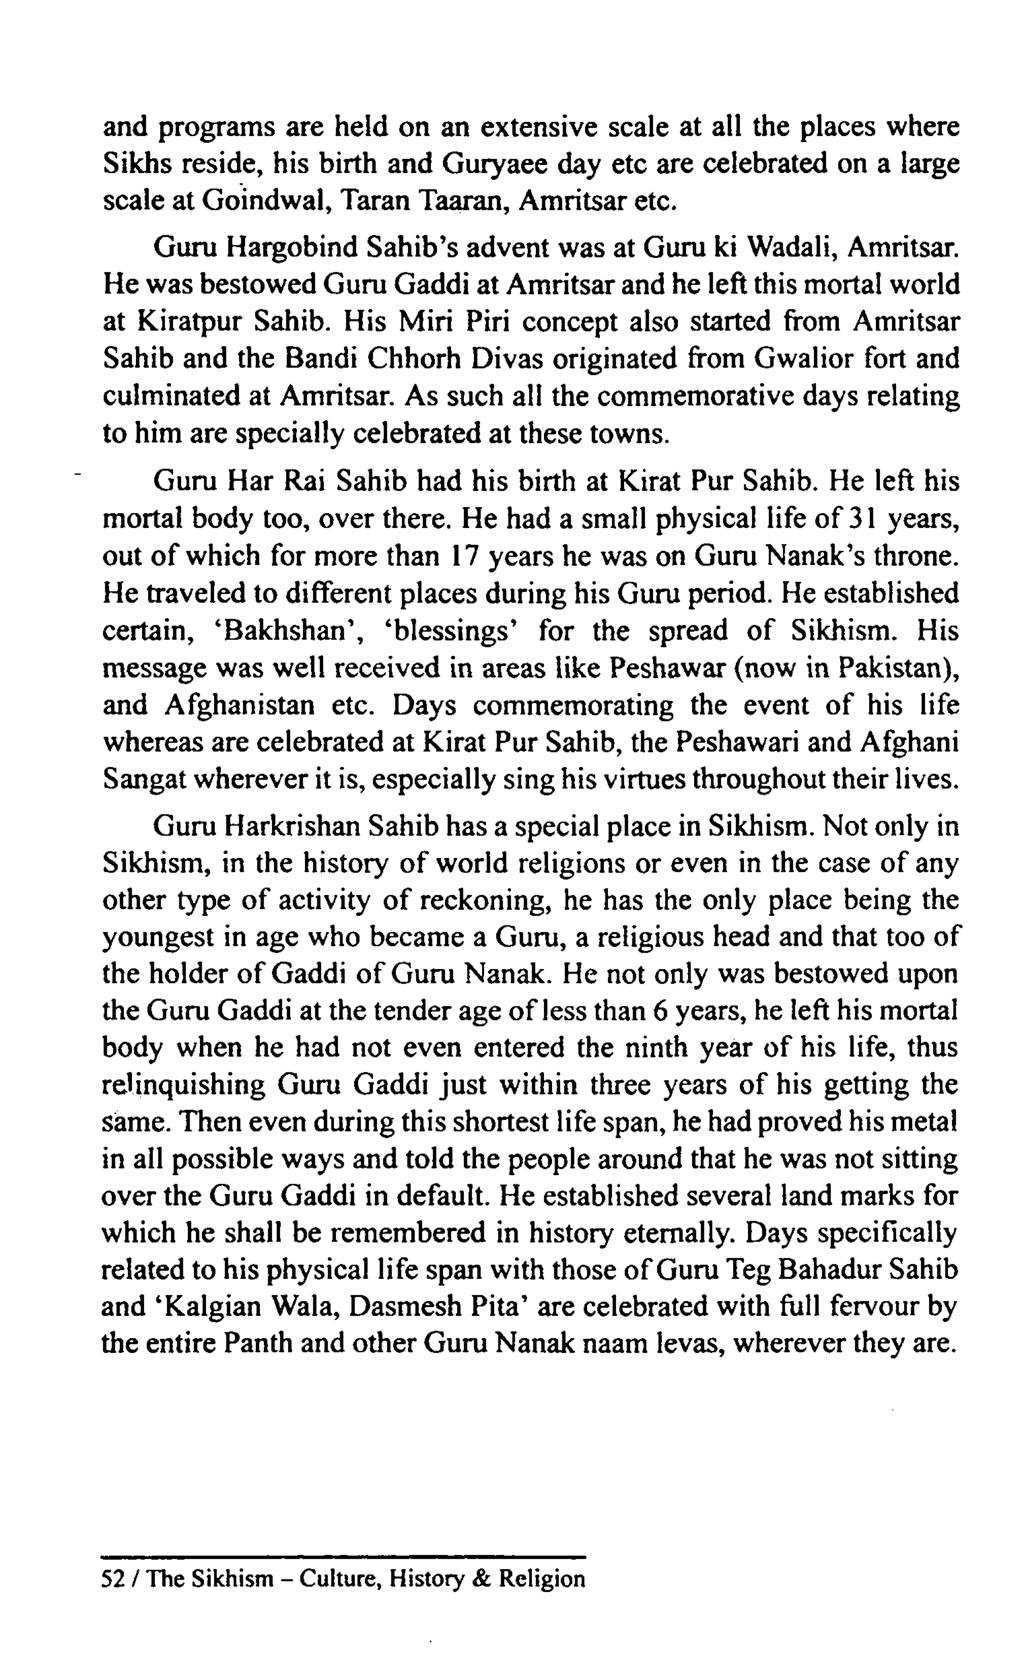 THE SIKHISM  Culture, History & Religion - PDF